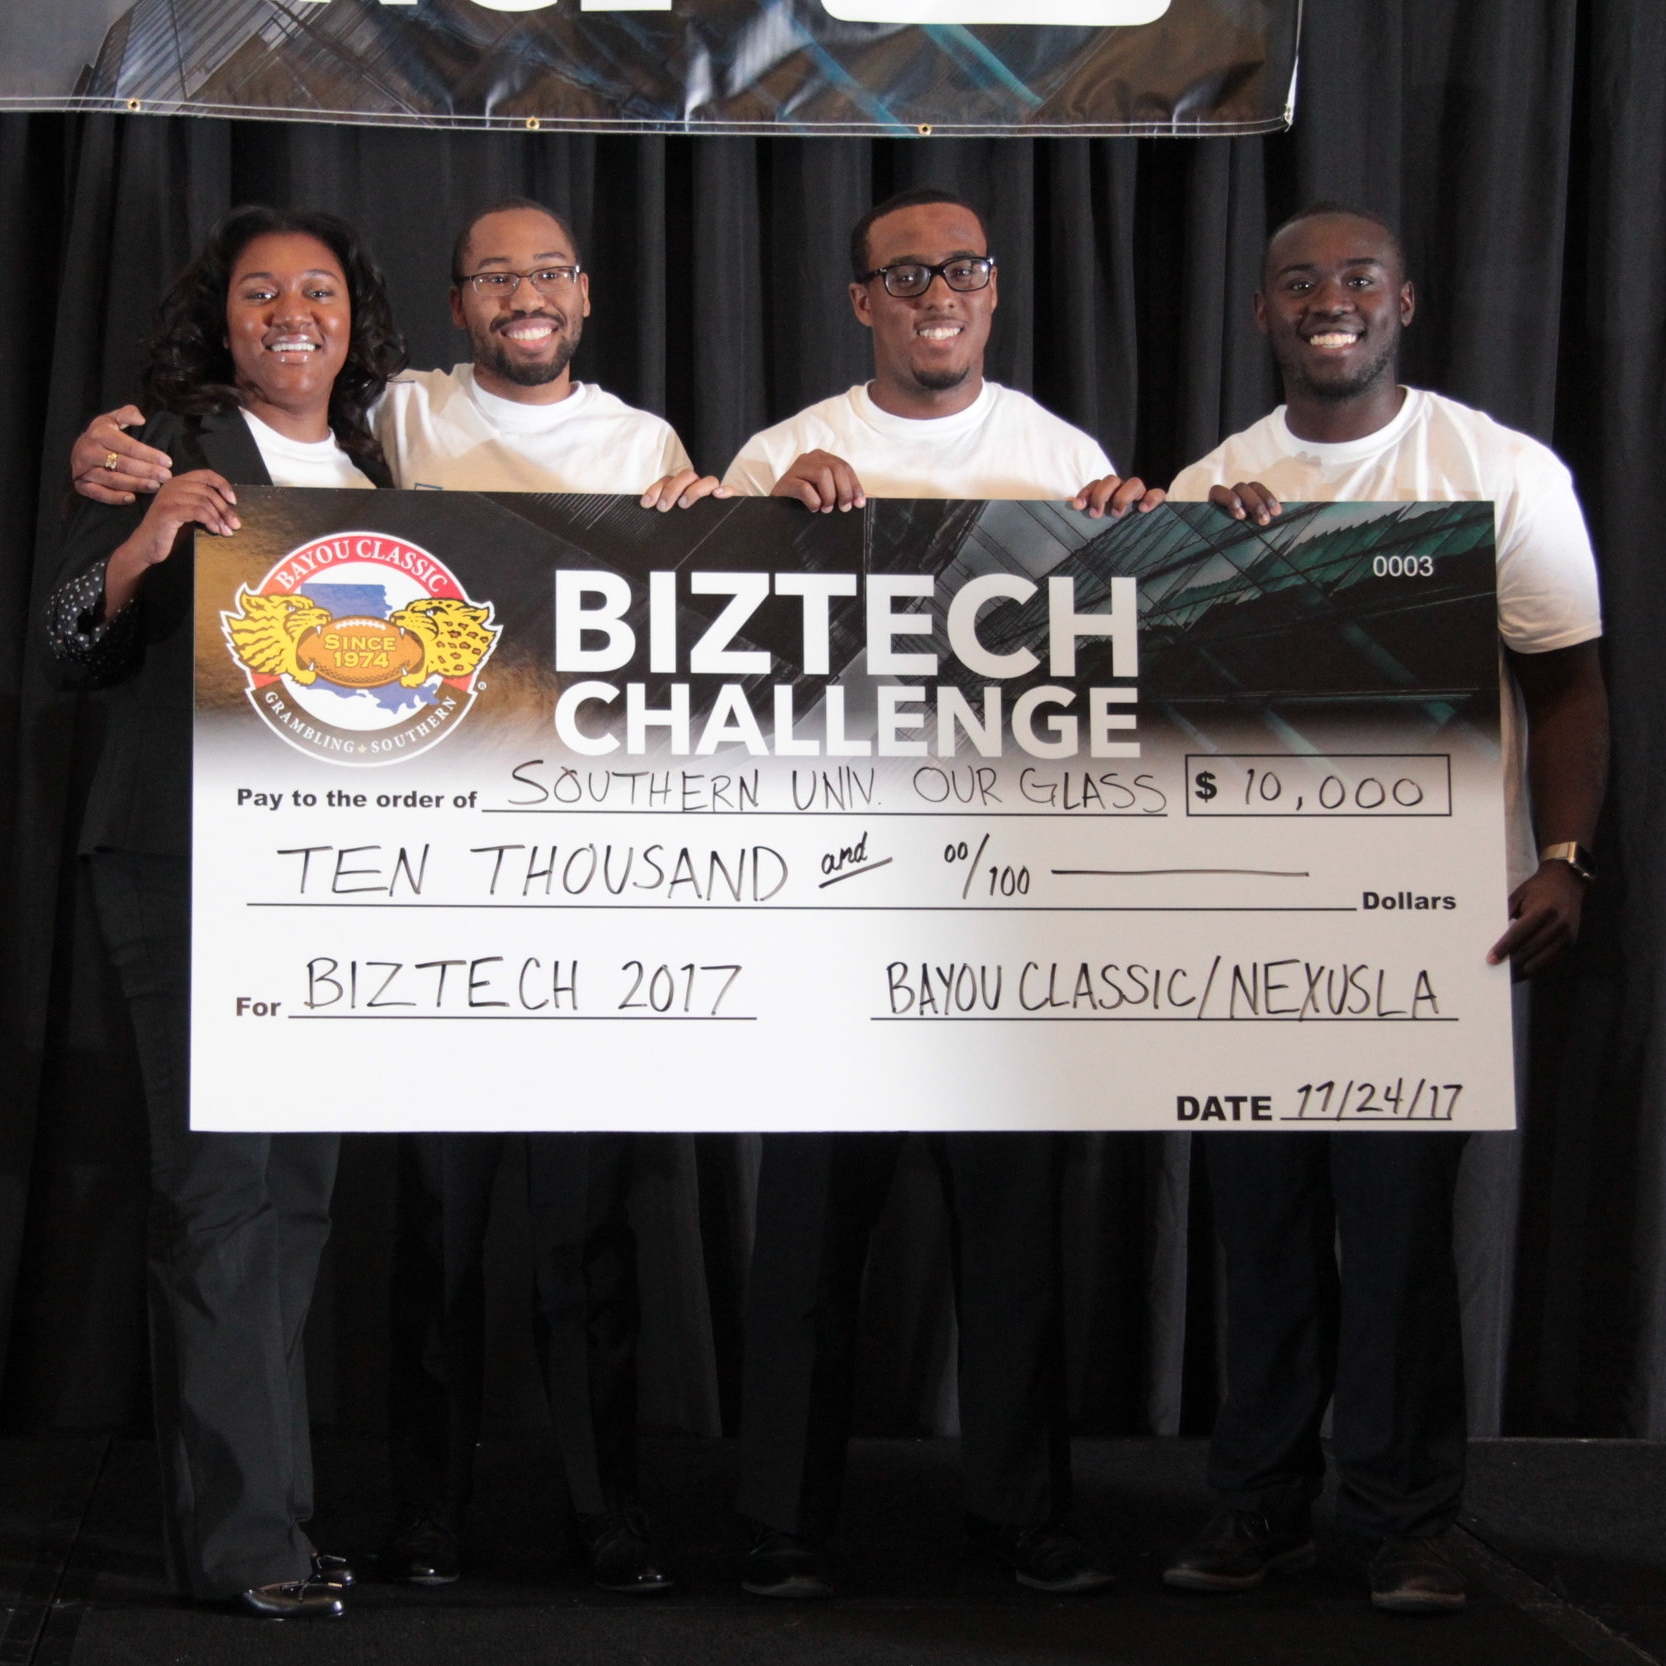 2017 Challenge Winners with their prize money